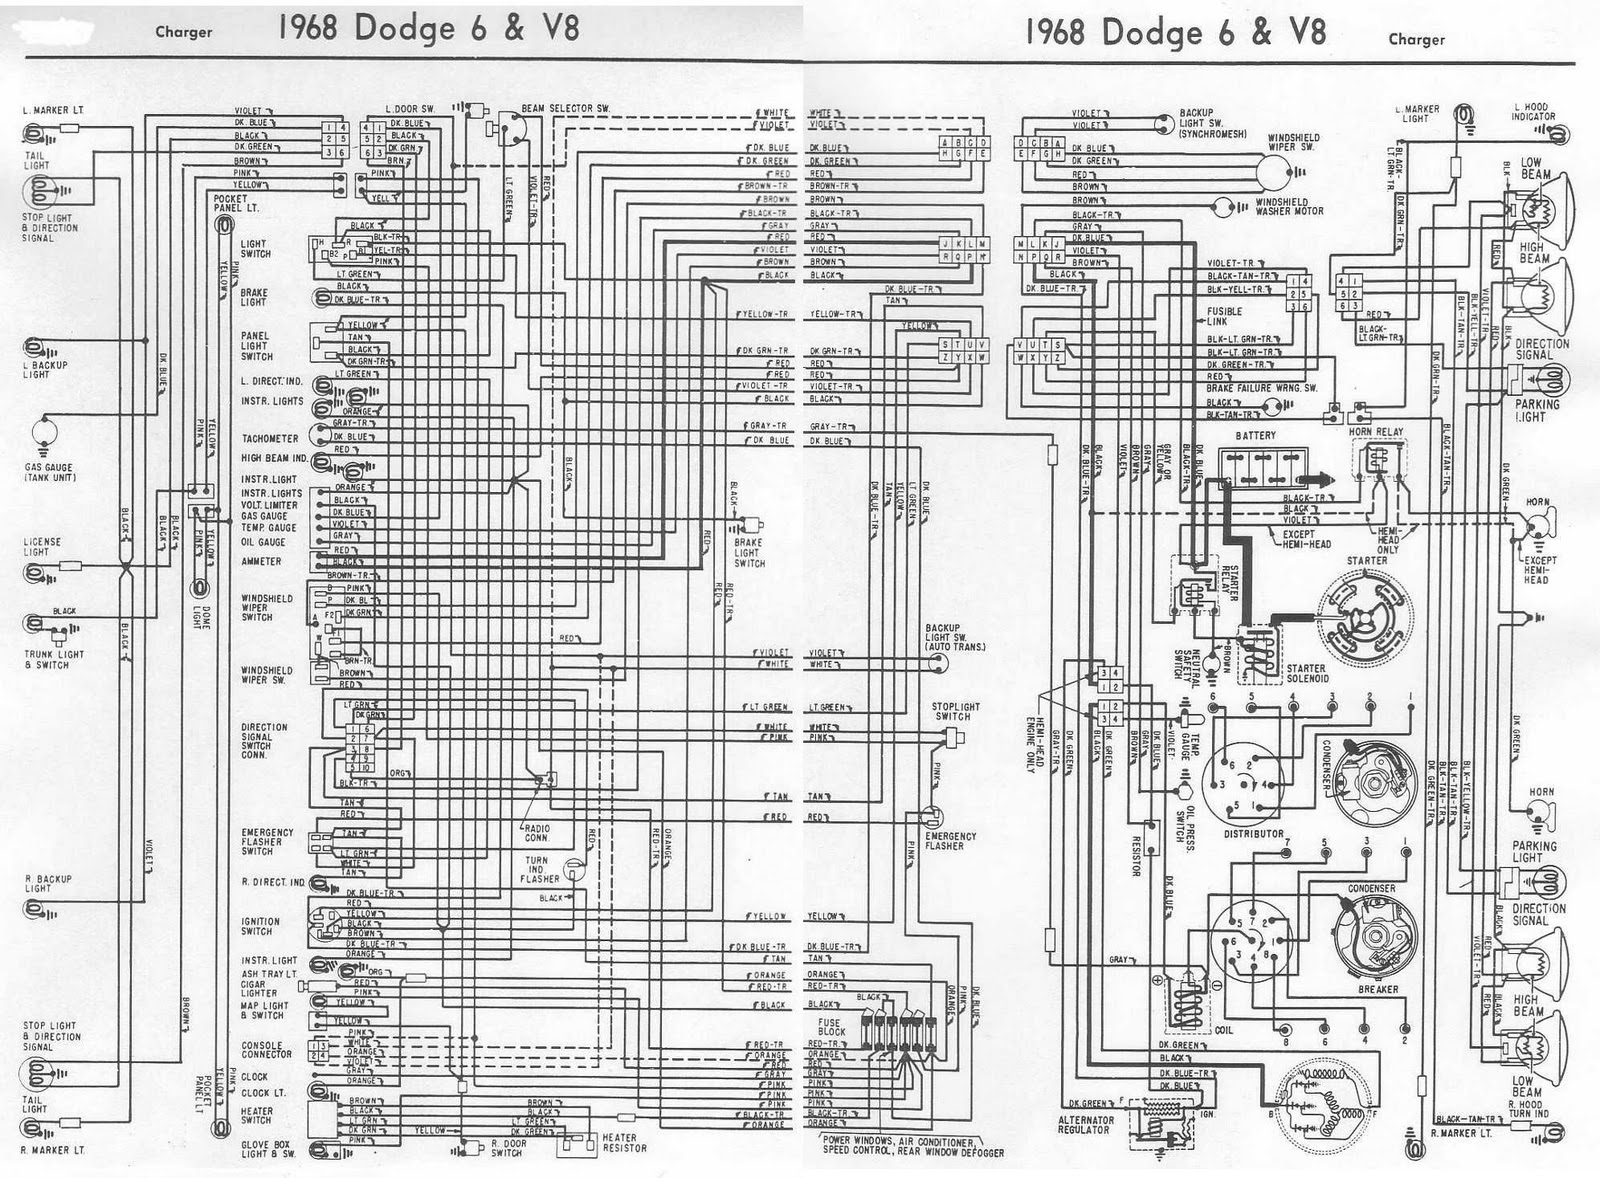 1971 chevelle dash wiring diagram 1971 camaro wiring diagram pro wiring diagram  1971 camaro wiring diagram pro wiring